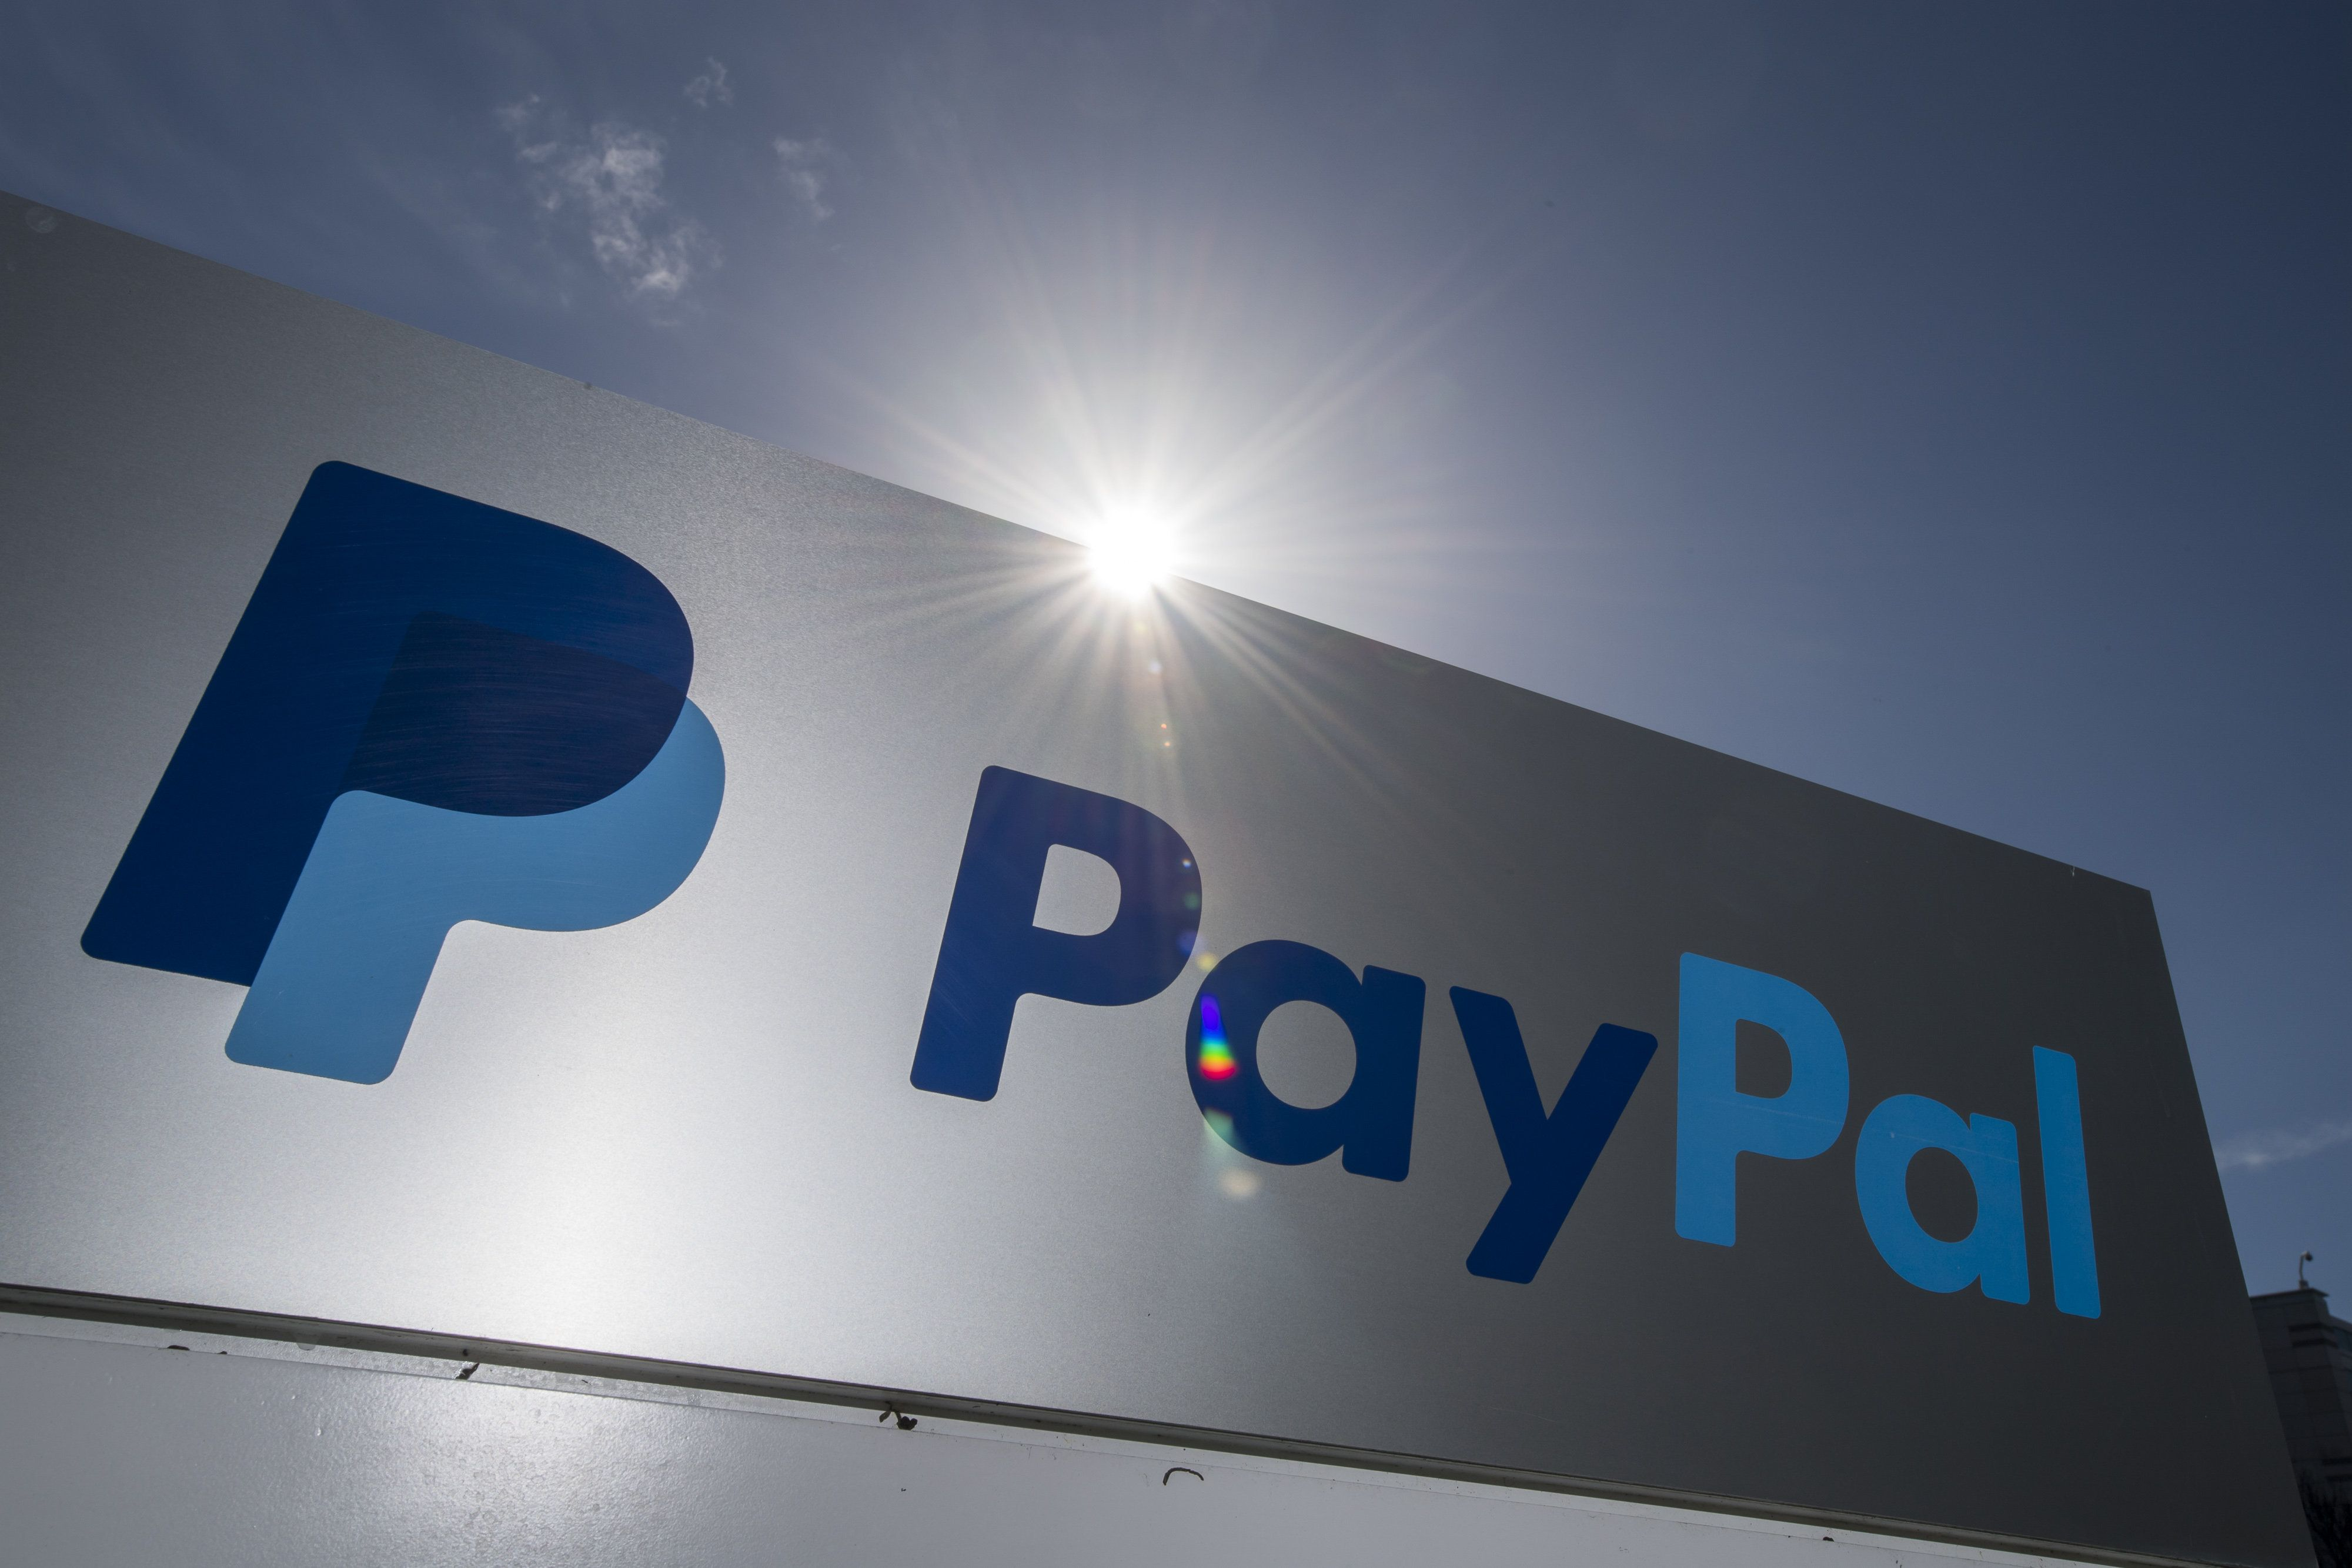 PayPal Holdings Inc. signage is displayed outside the company's headquarters in San Jose, California, U.S., on Tuesday, Jan. 24, 2017. PayPal Holdings Inc. is scheduled to release earnings figures on January 26. Photographer: David Paul Morris/Bloomberg via Getty Images